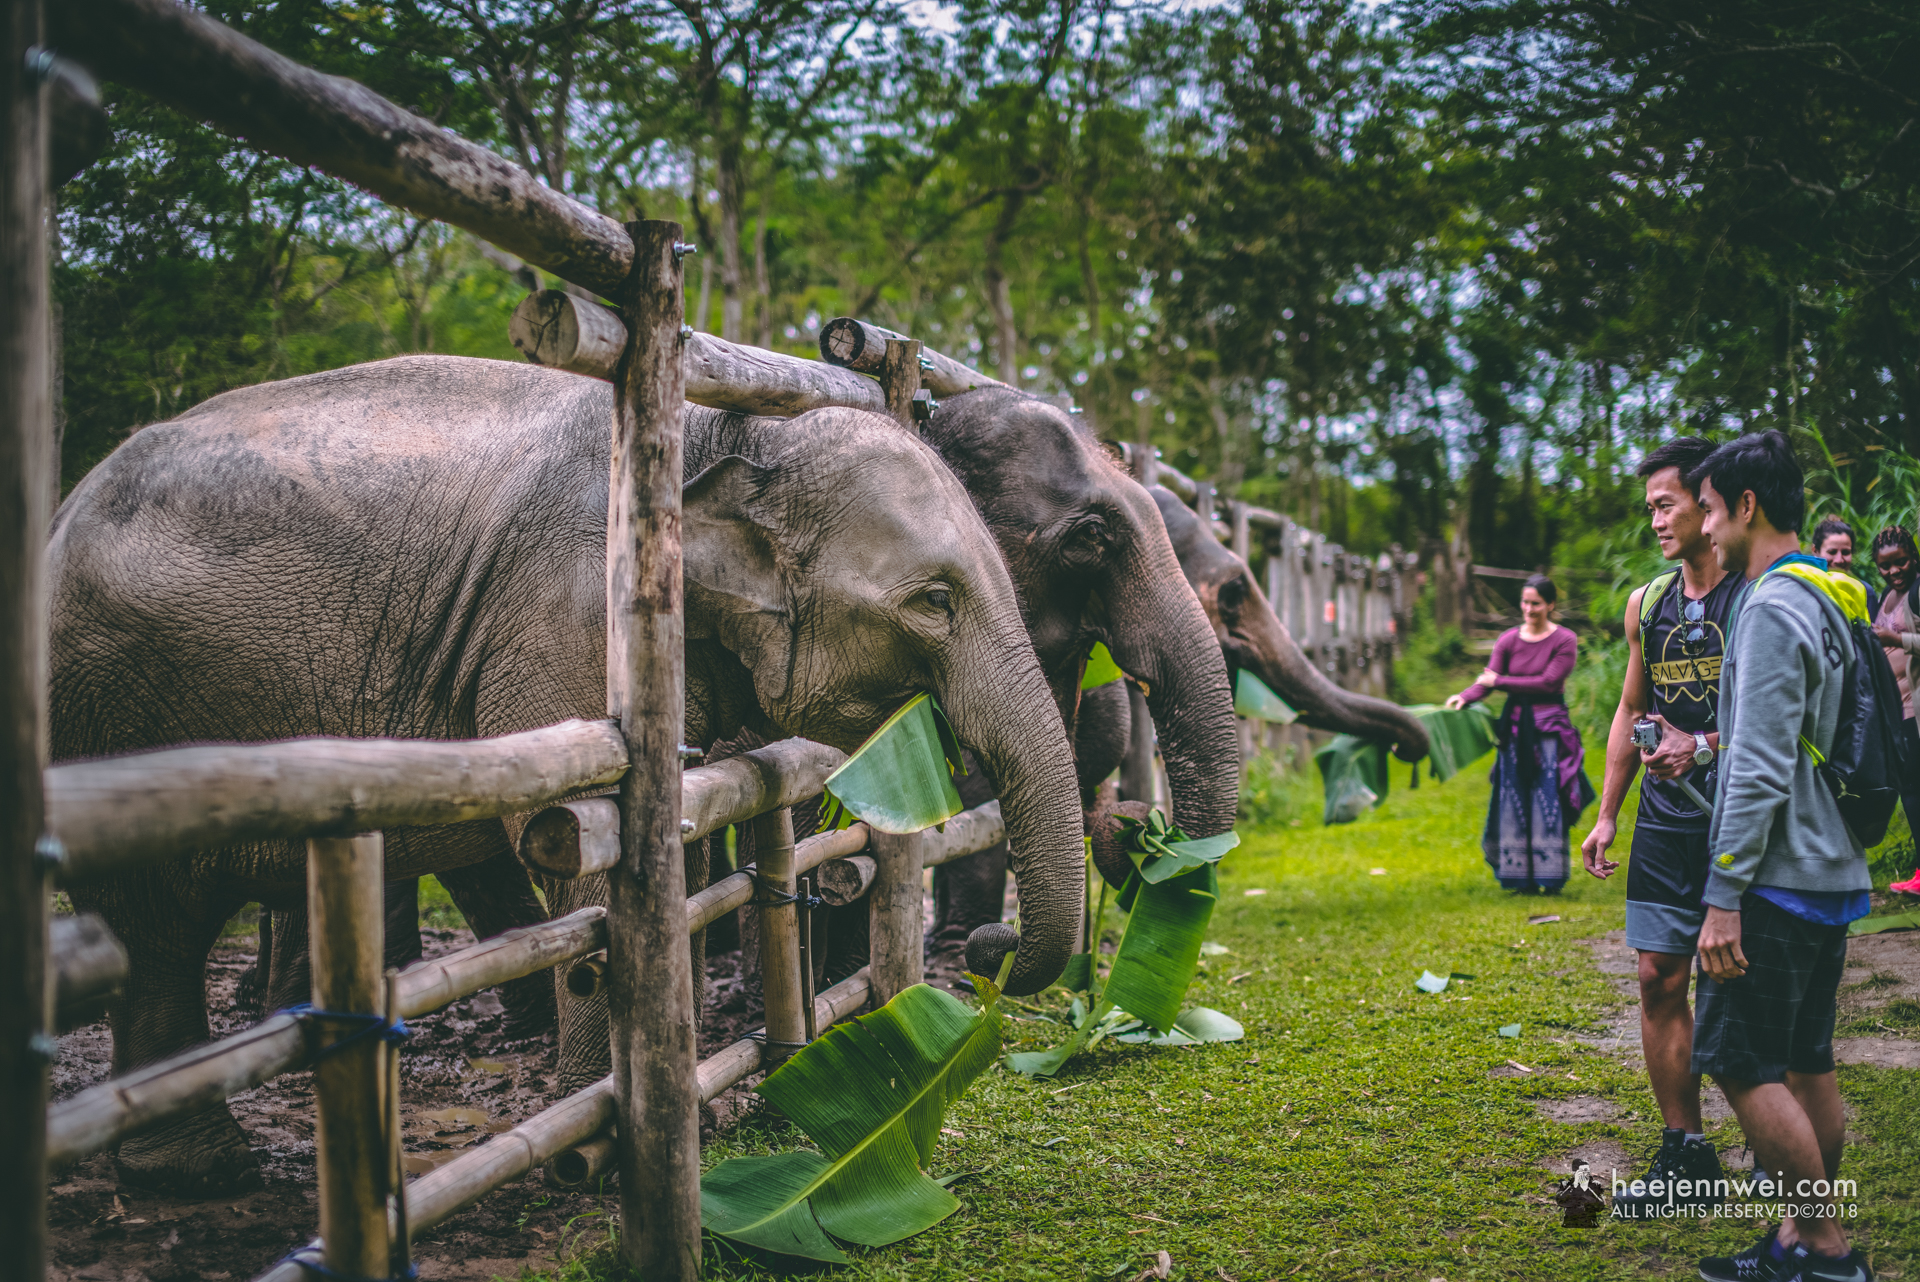 Feeding the elephants roots, tubers, plantains and banana leaves.